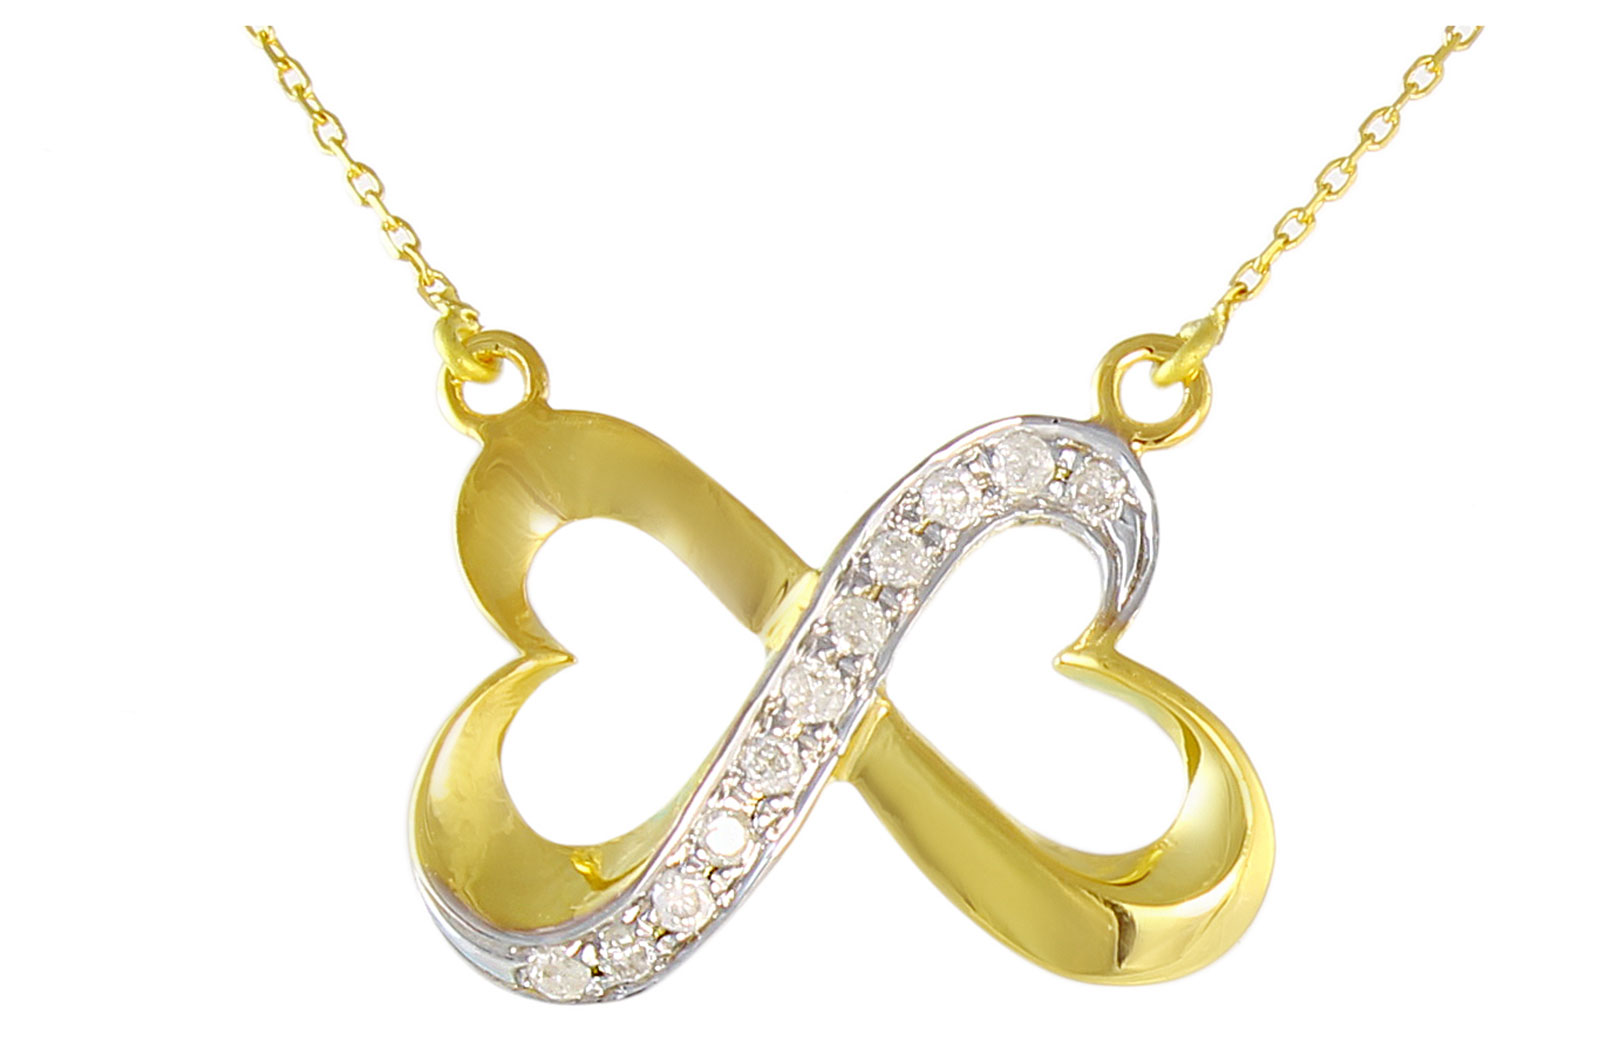 Vera Perla  18K Solid Gold and 0.11Cts Diamonds Interlocking Hearts Necklace